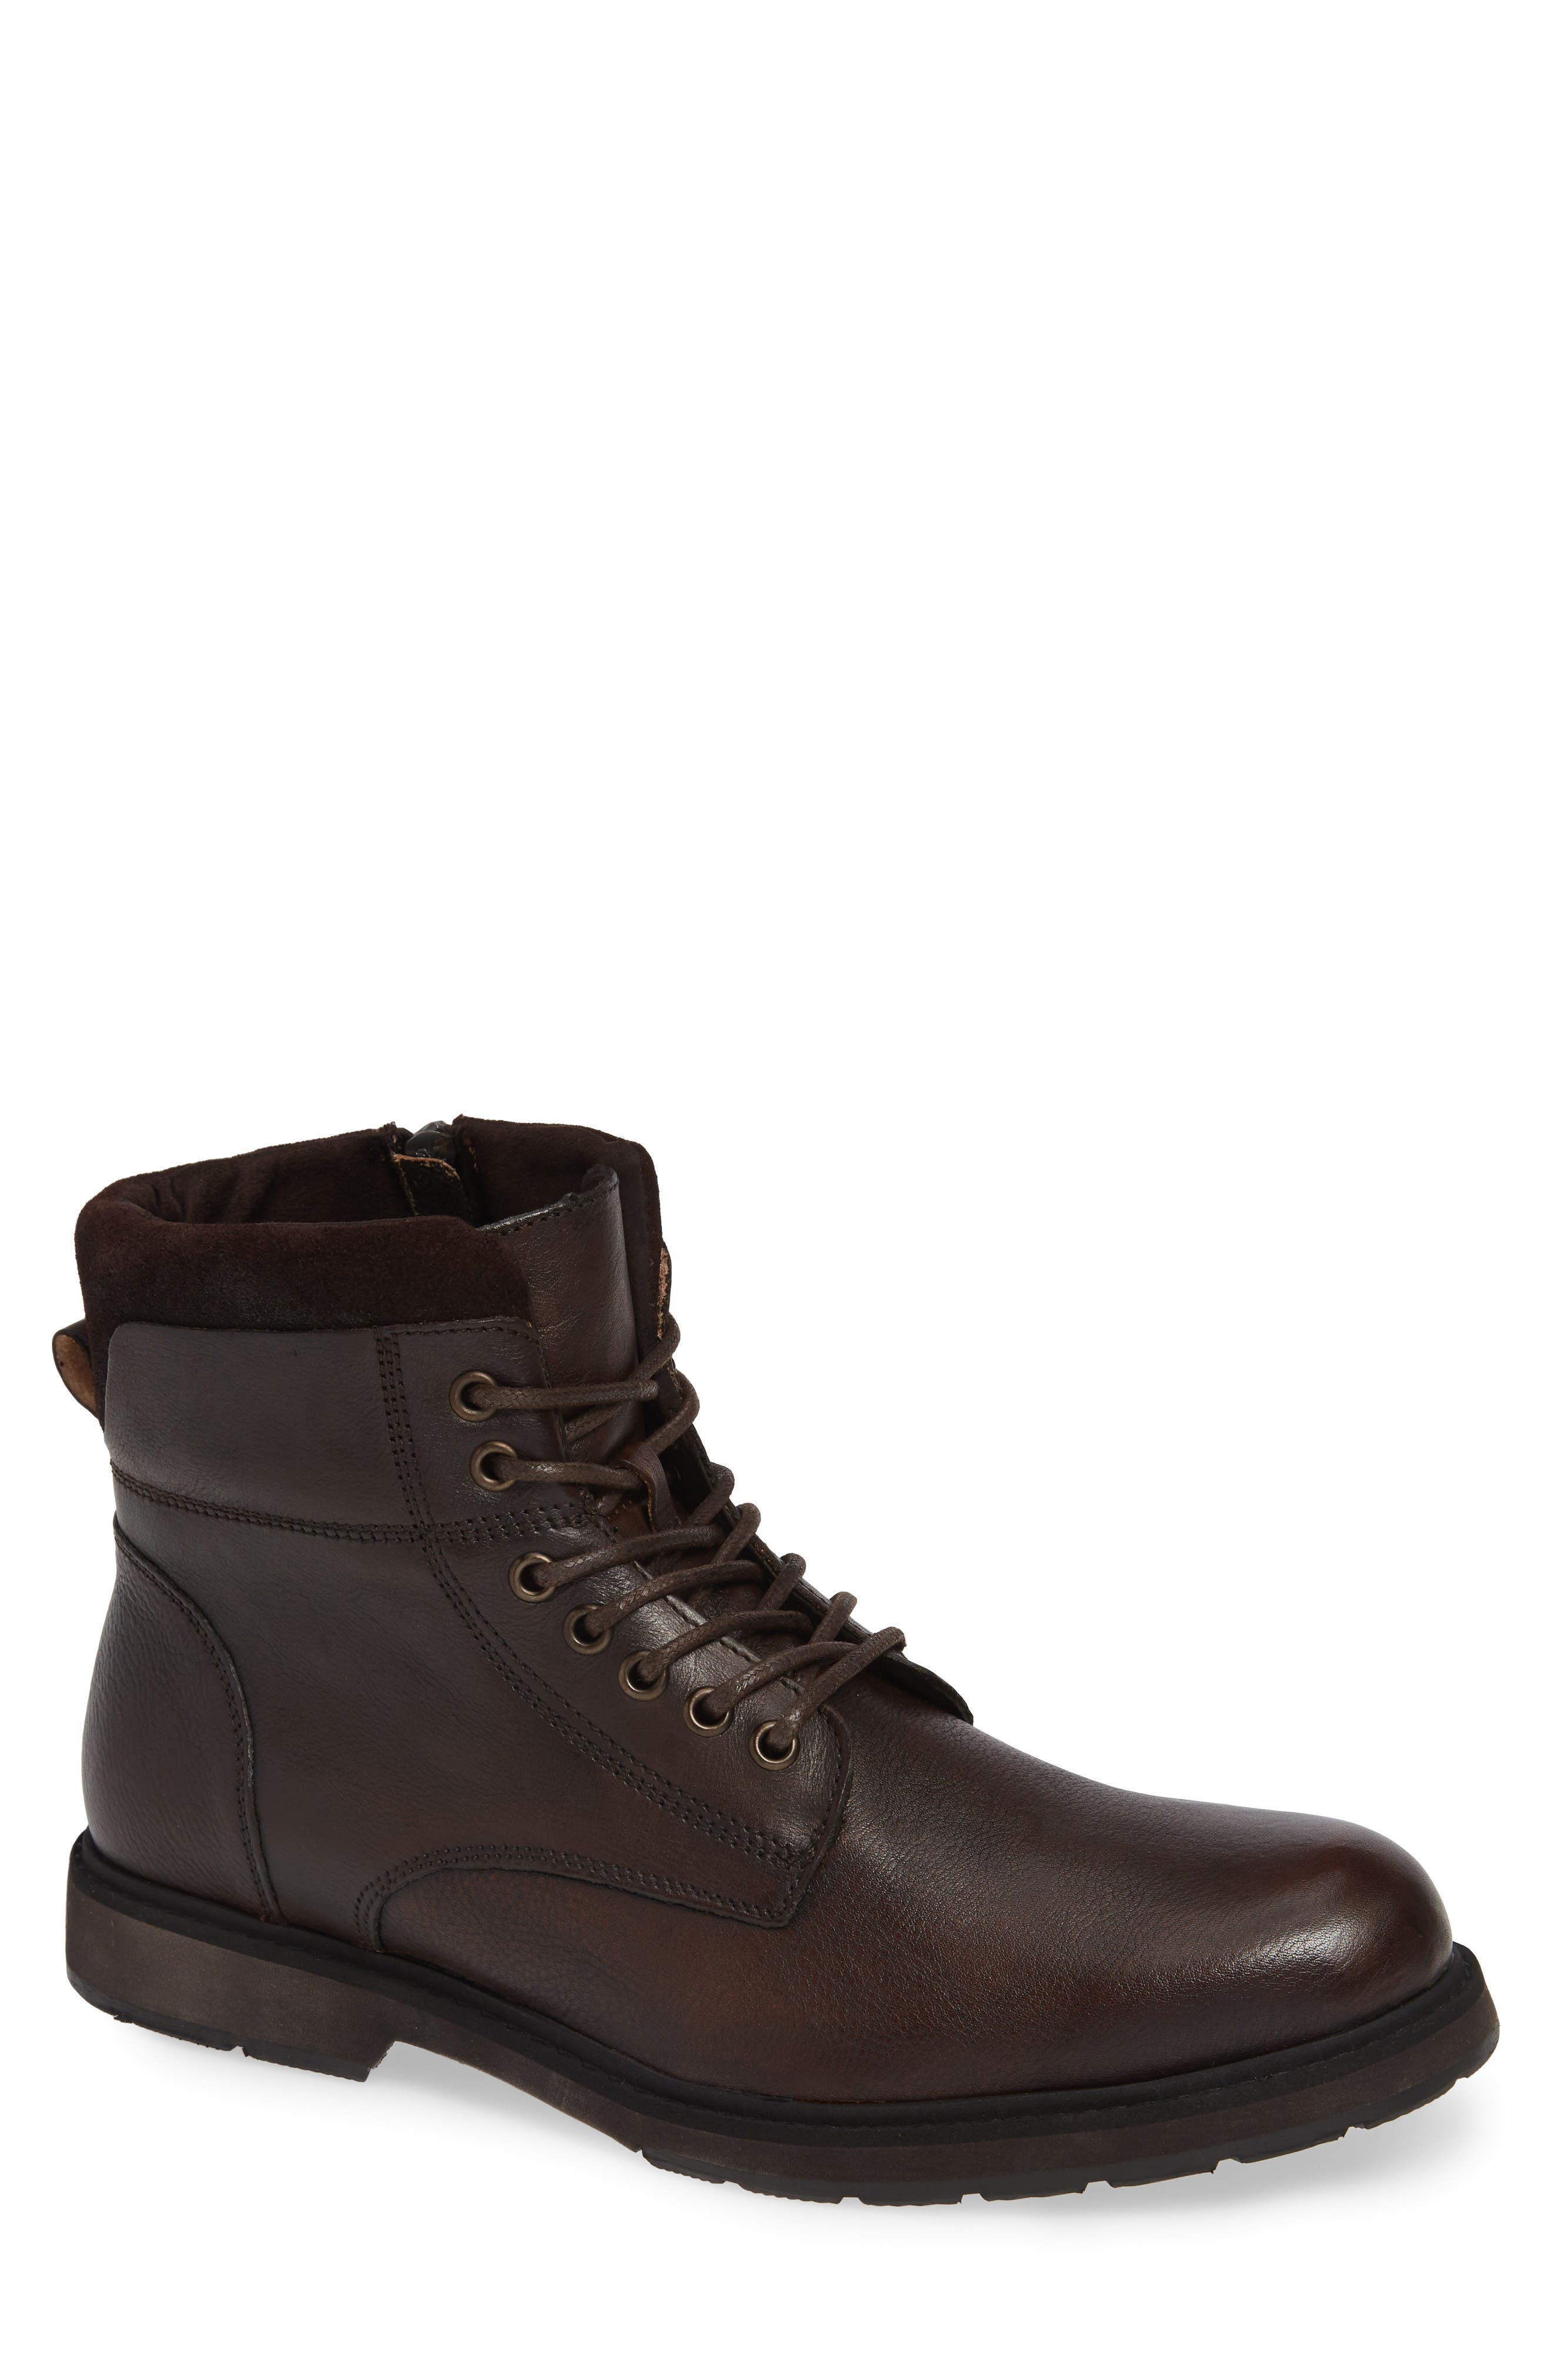 Reaction Kenneth Cole Drue Pebbled Combat Boot, Brown